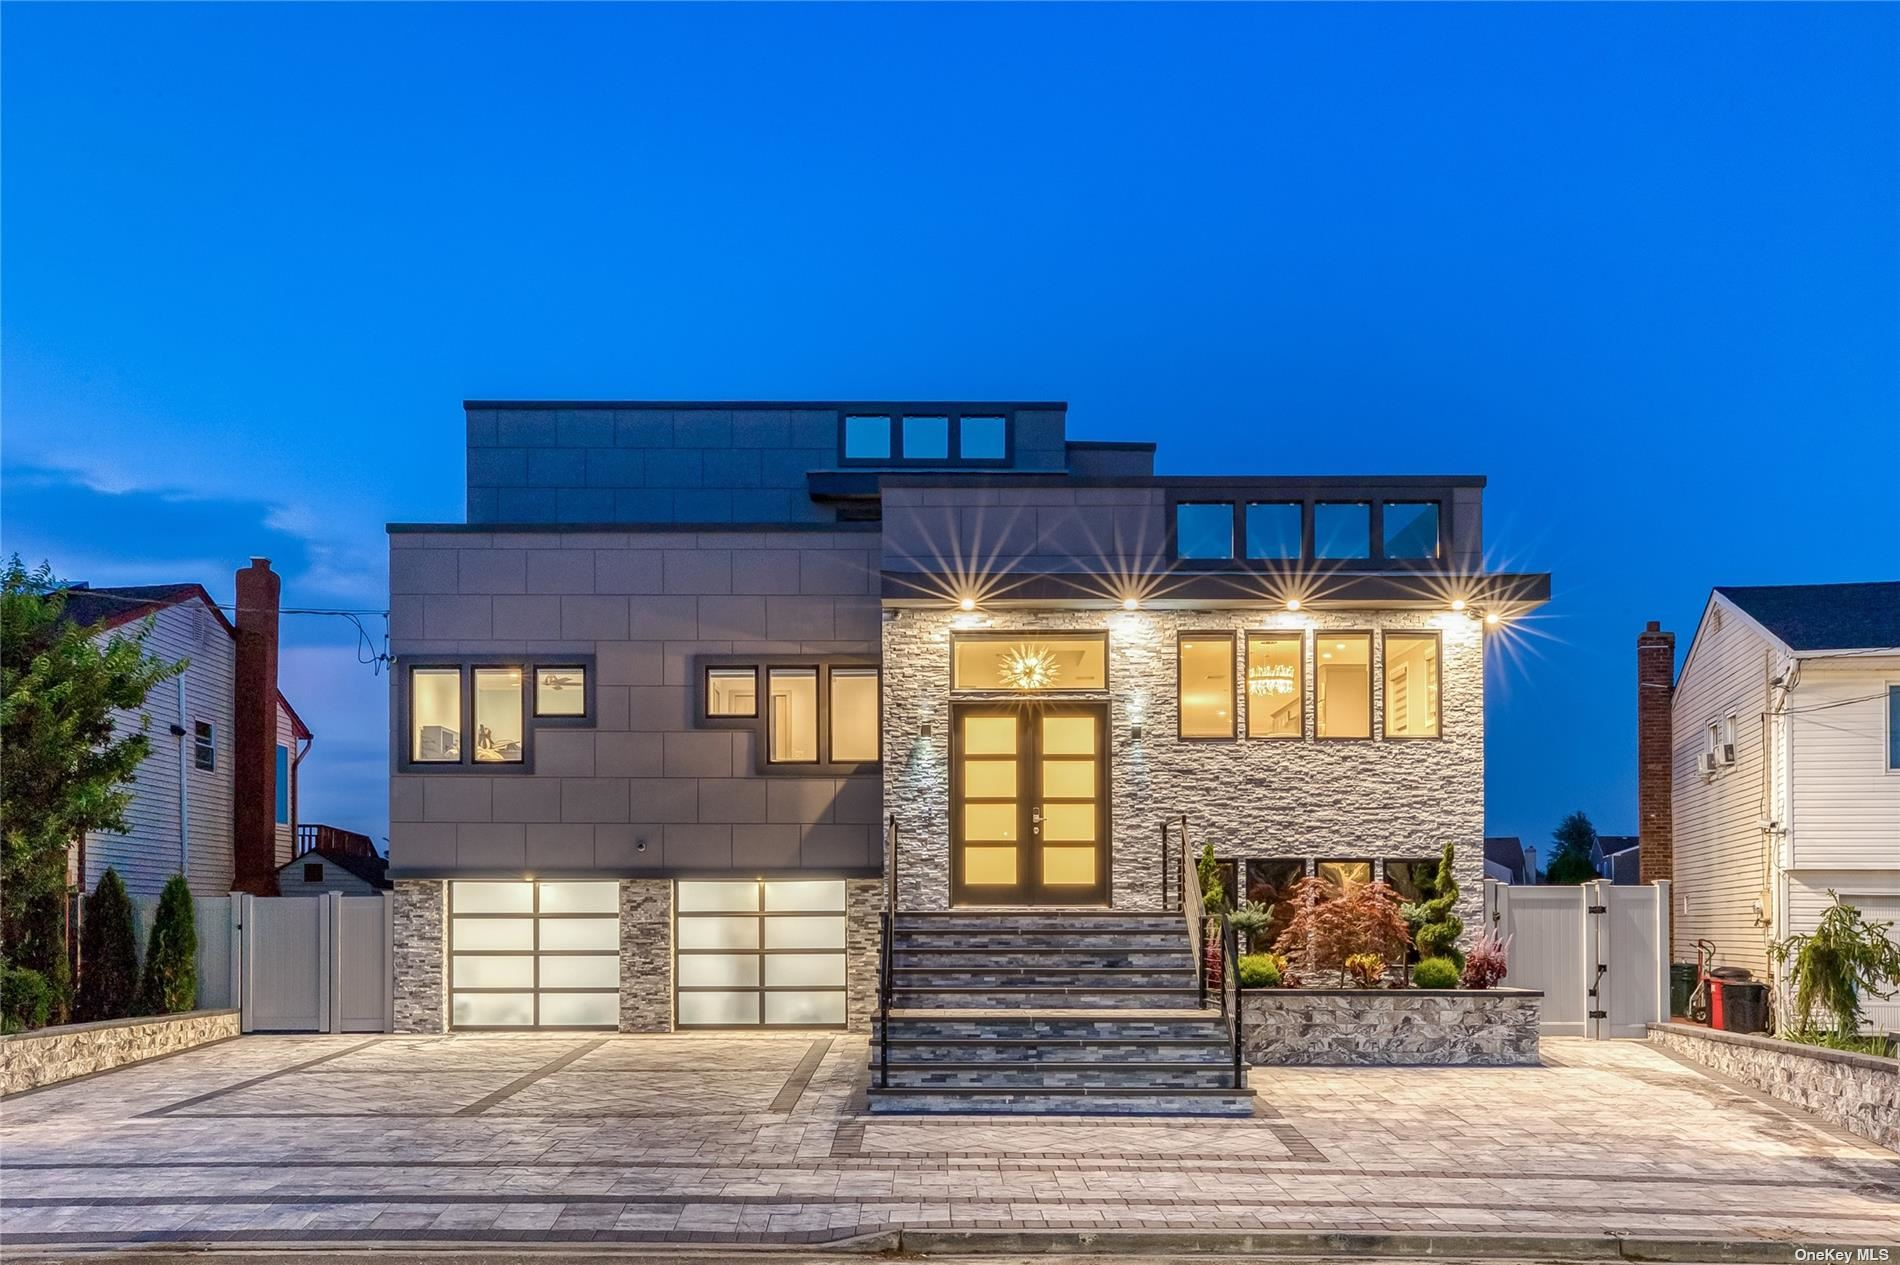 """Welcome To A One-Of-A-Kind, Luxury, Waterfront, 5 Bedroom, 4 Bath Custom Rebuilt Contemporary Style Home. This Home Has Some Of the Most Unique Features Of Any Home In This Area. It's 2 Separate Rooftop Decks Surpass The Height Of Almost Every Home Giving Unobstructed Views Of Jones Beach As Well As A Full Sunrise & Sunset. It's Top-Of-The-Line Chef's Kitchen Features All Wolf Appliances & Oversized Hood, A Quartz Waterfall Countertop & Backsplash, Miele Built-In Coffee Bar,  Chef Sink & A Beautiful Terrace.  The Backyard Is An Entertainer's Dream & Is Equipped With A New Salt Water, Heated, """"Smart"""" Pool With Hot Tub, Hydraulic Cover, 4 Shooting Deck Jets, Lighting & Can All Be Controlled Remotely. It's Outdoor Kitchen Incl. A Built-In BBQ, Ice Maker, Refrig., Bar Sink & Drawers & Granite Bar W. Lighting. The Bulk Head & Pier Are New & Features Underwater Lights. Lutron """"Smart"""" Home Features Bose Bluetooth Backyard System, 16 Cameras, CCT TV W 4K Megapixels & Much Much More."""